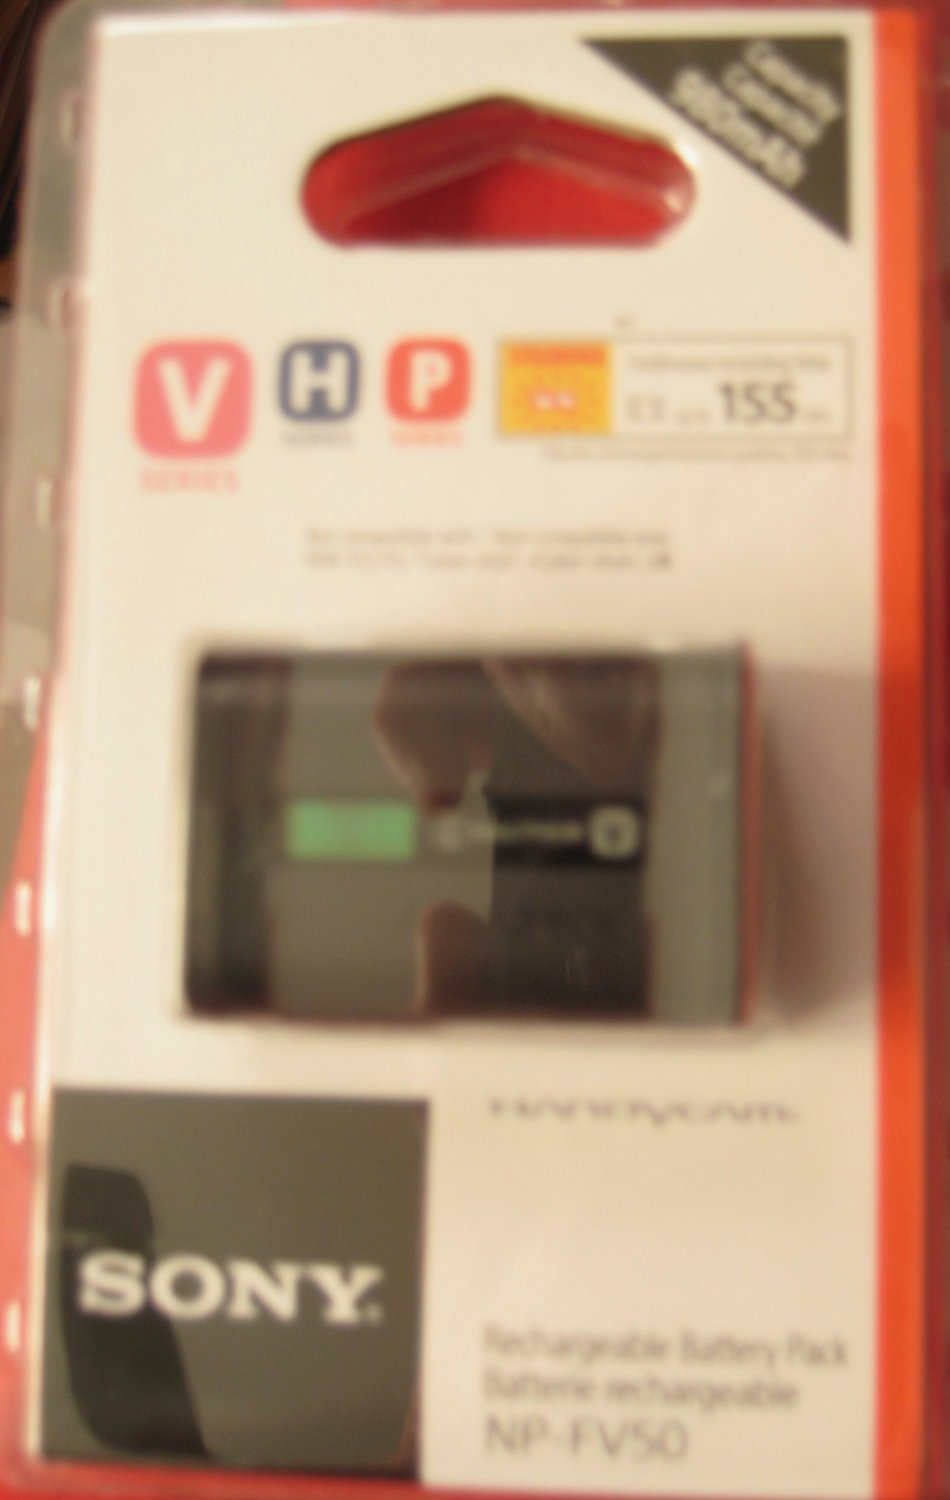 Sony NP-FV50 V-Series Rechargeable Battery for Sony Camcorder Handycam